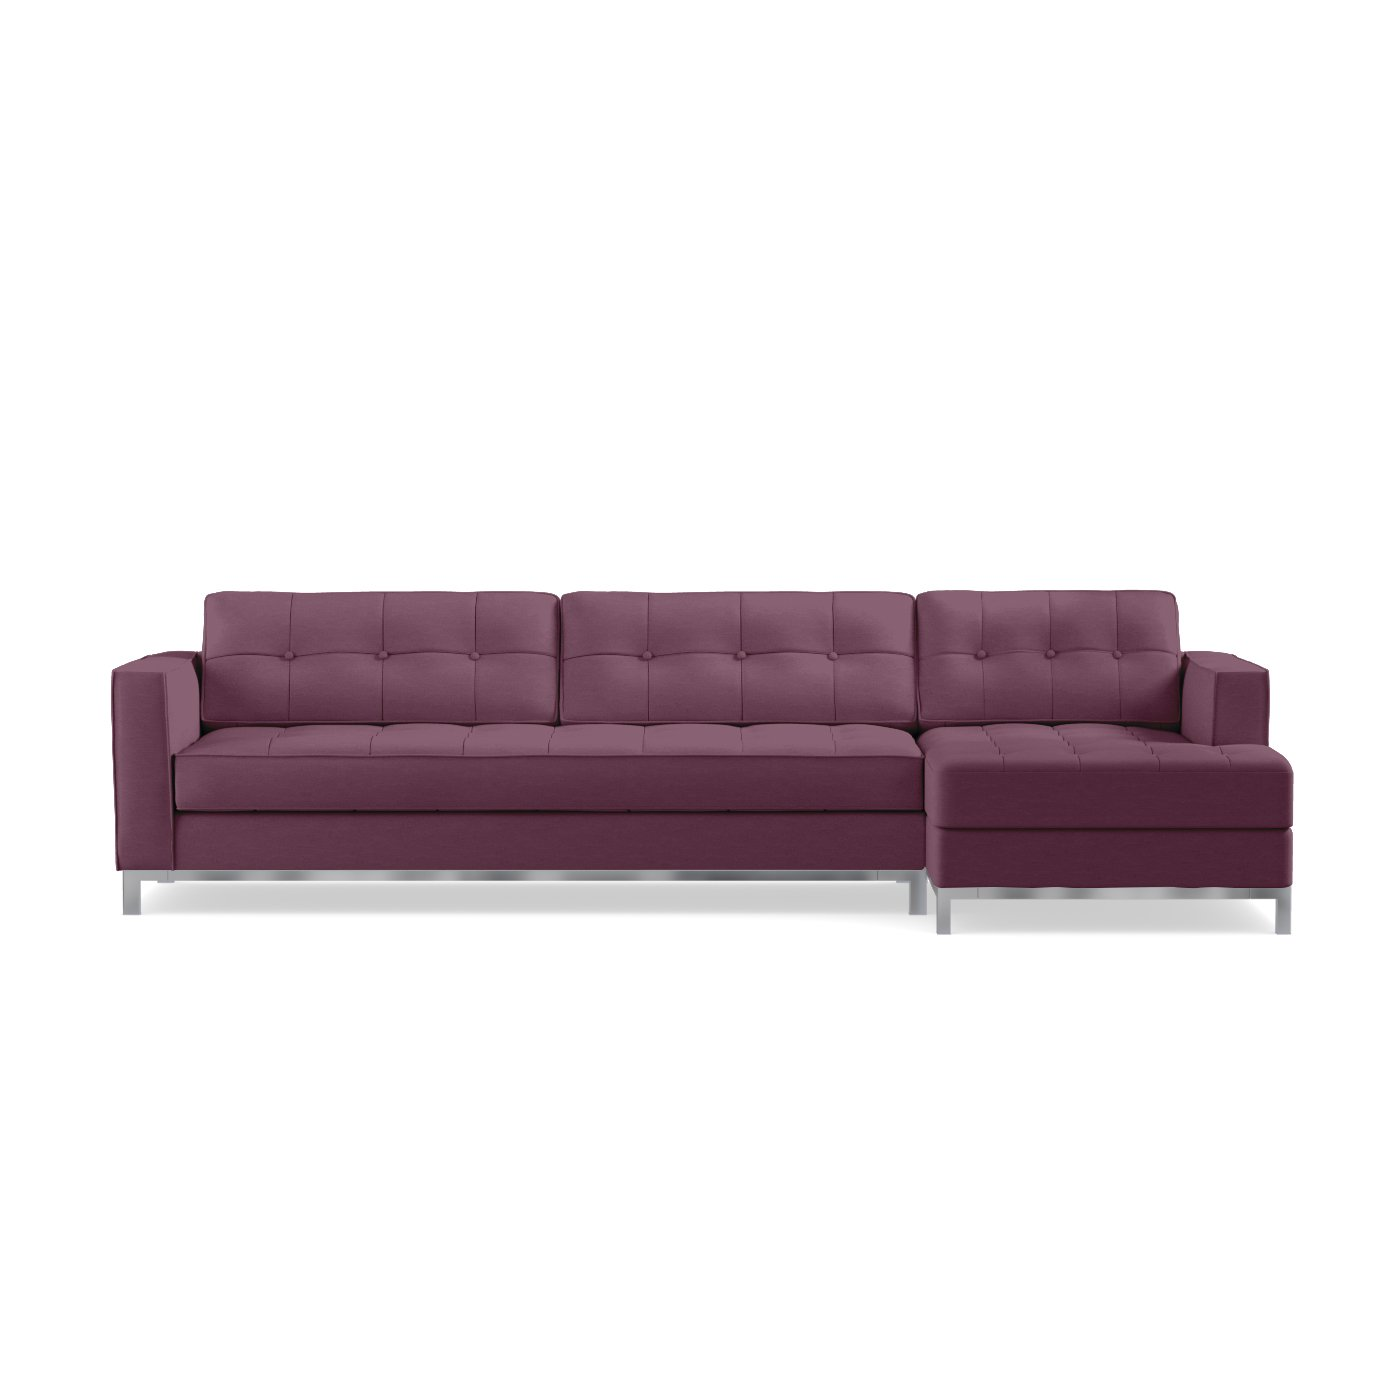 Fillmore 2pc Sectional Sofa  sc 1 st  Apt2B : purple sectional couch - Sectionals, Sofas & Couches